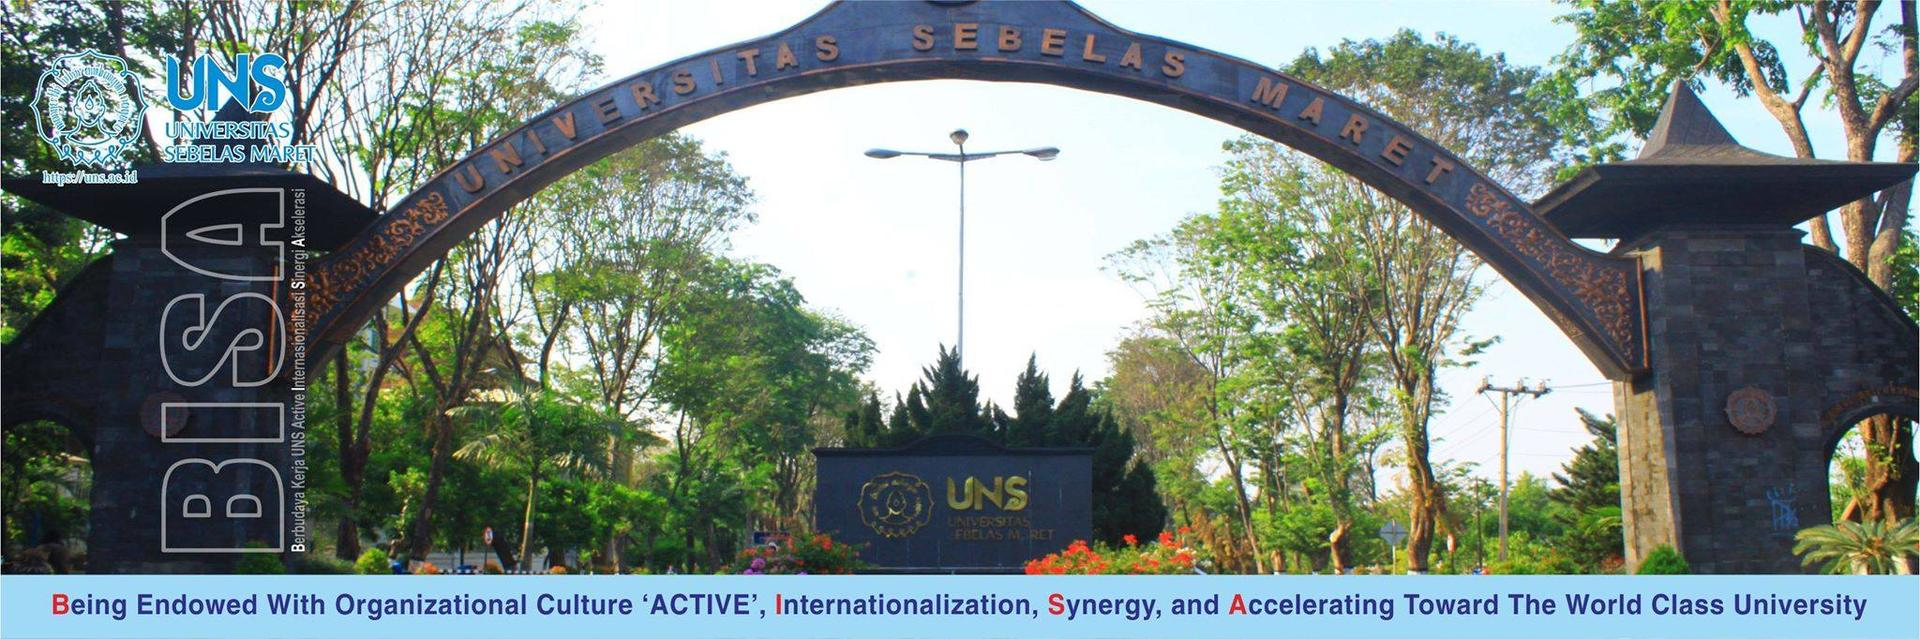 Entrance Universitas Sebelas Maret